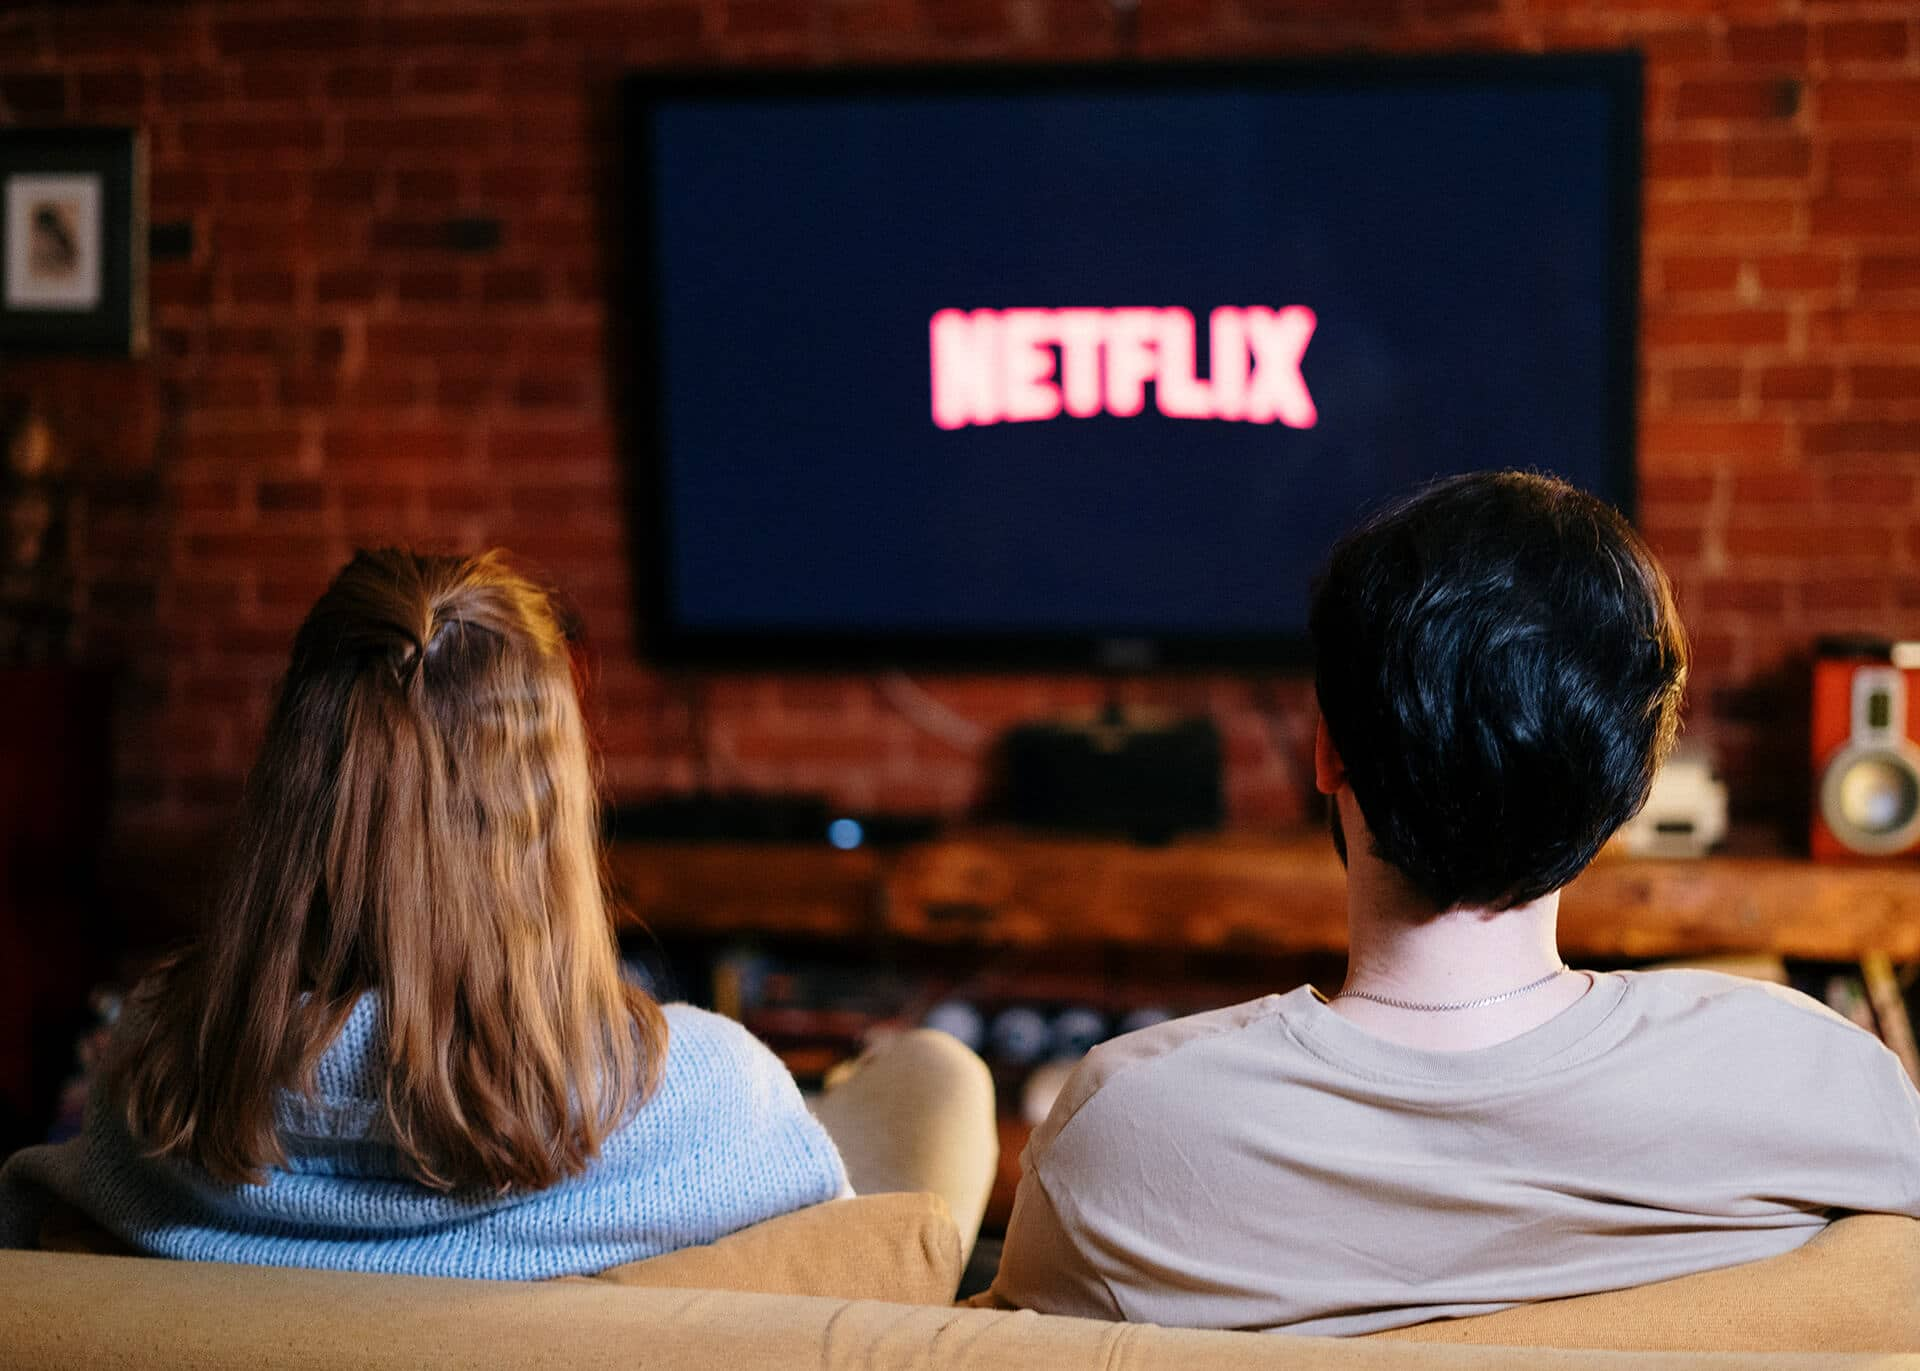 couple at home watching netflix